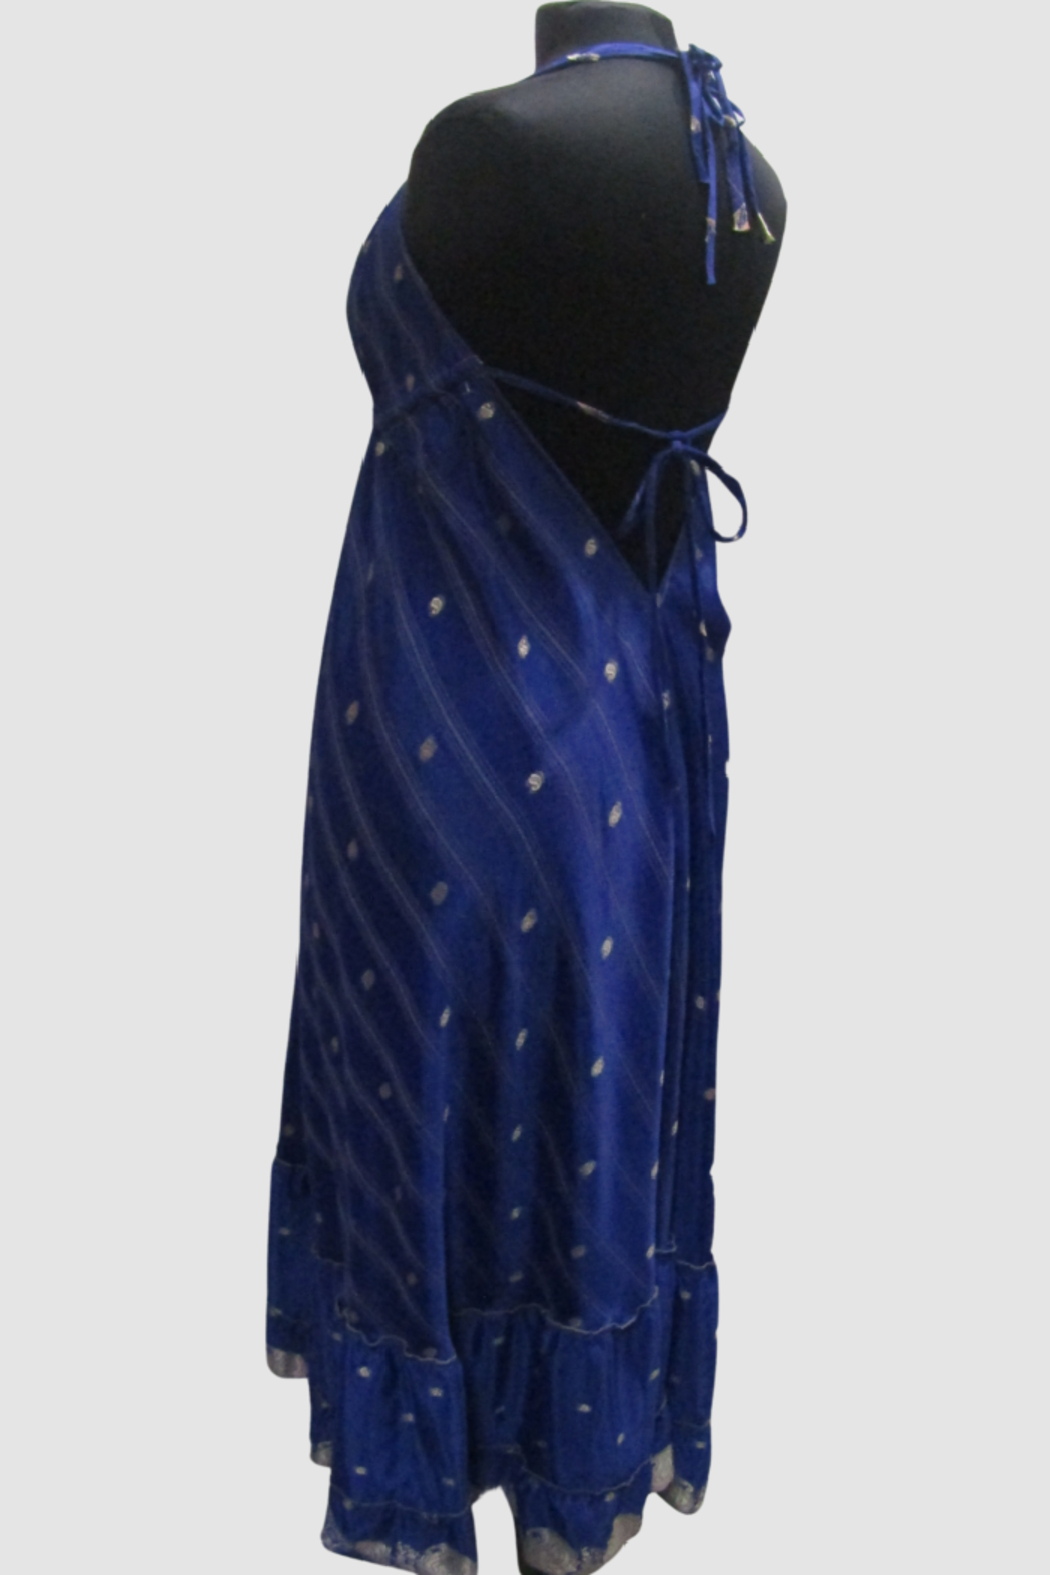 India Boutique Bohemian Rhapsody Halter Dress - Royal - Side Cropped Image